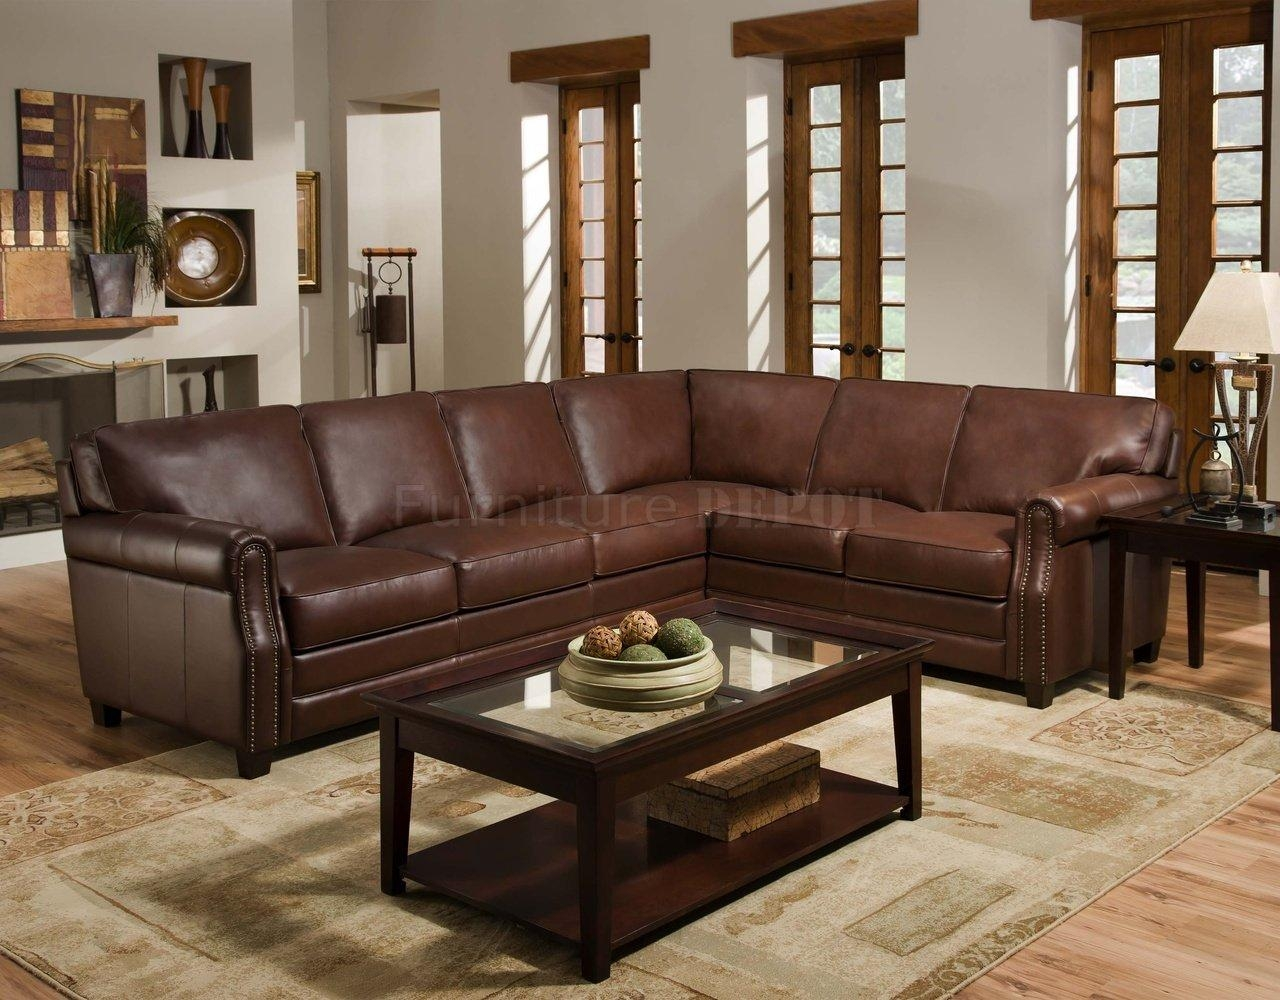 Cocoa Brown Top Grain Italian Leather Traditional Sectional Sofa Throughout Traditional Sectional Sofas Living Room Furniture (View 2 of 20)